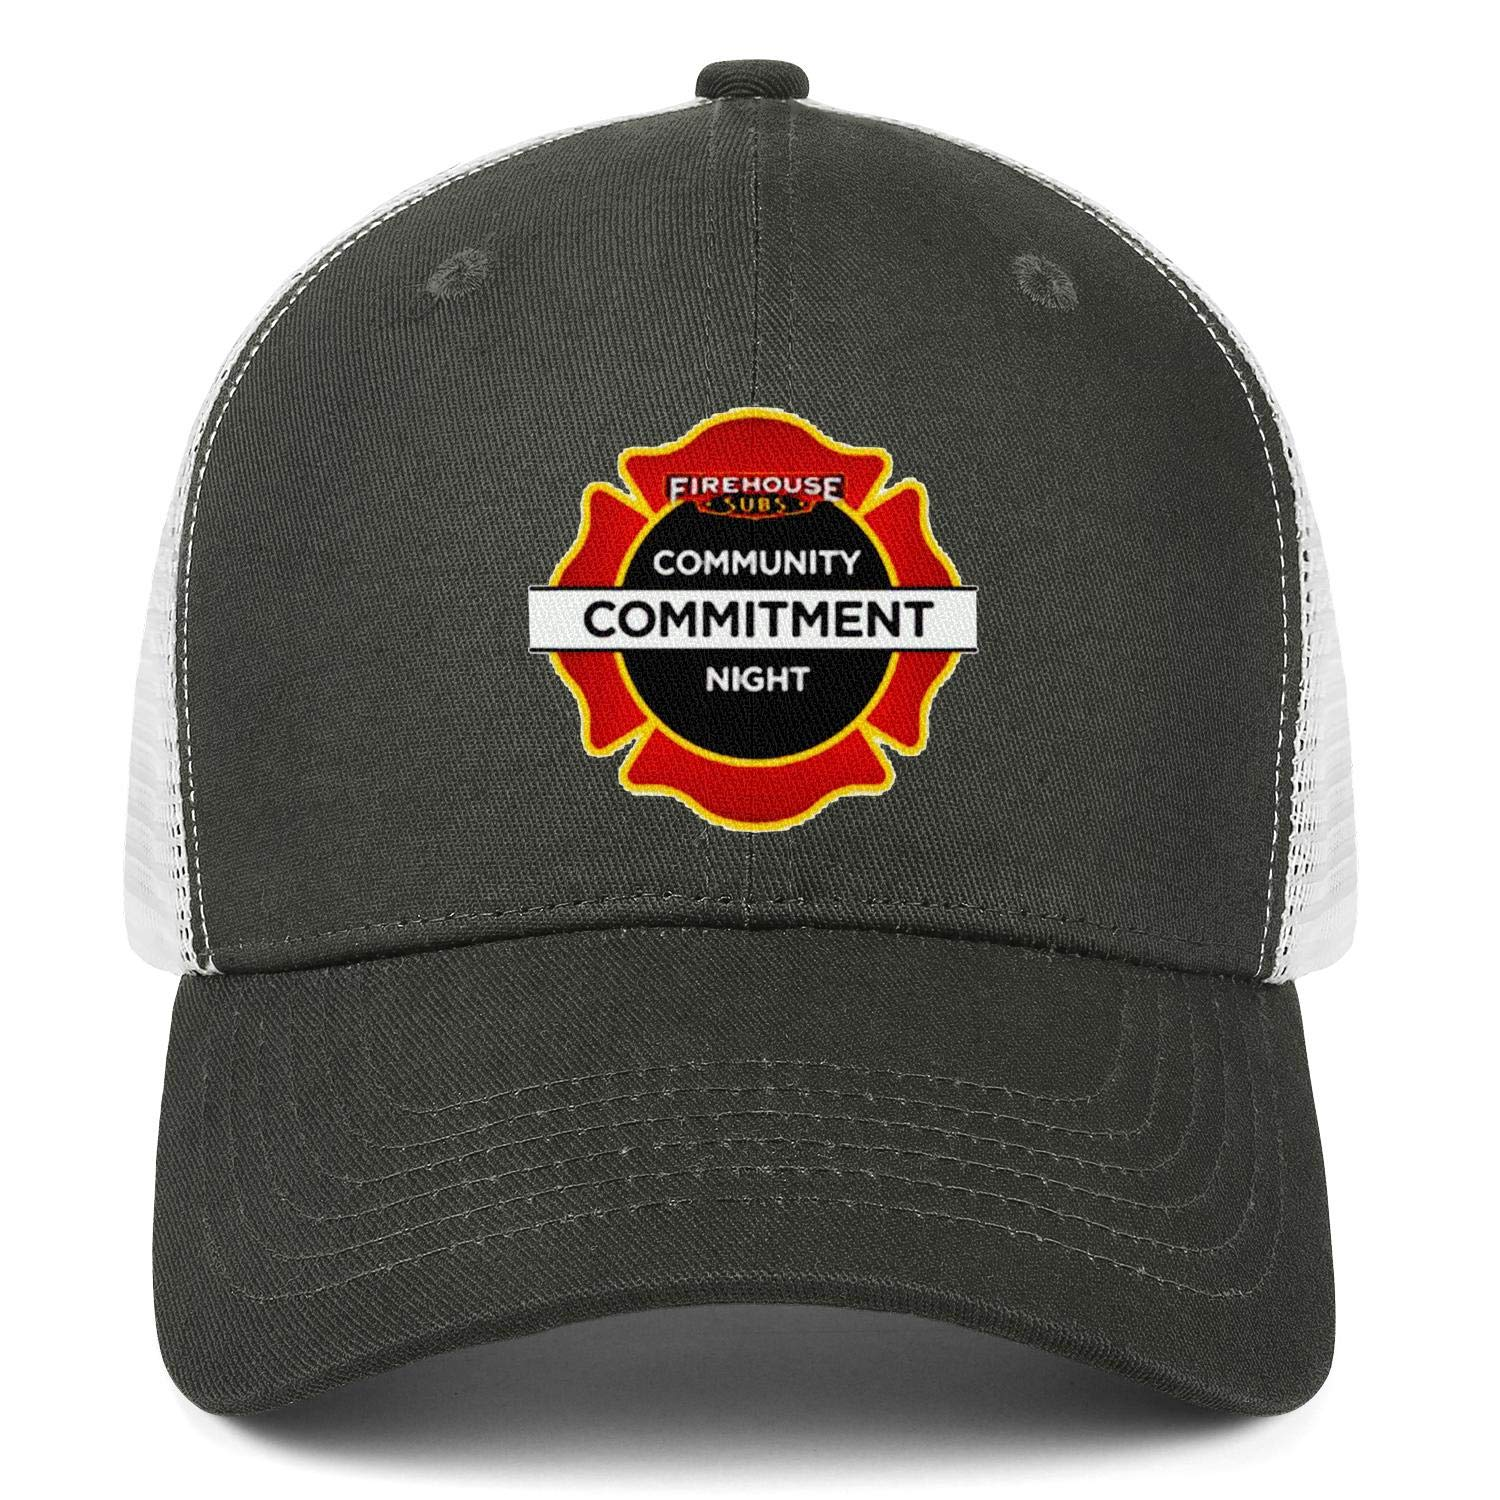 WintyHC Firehouse Subs Sign Cowboy Hat Dad Hat Adjustable Fits Baseball Cap